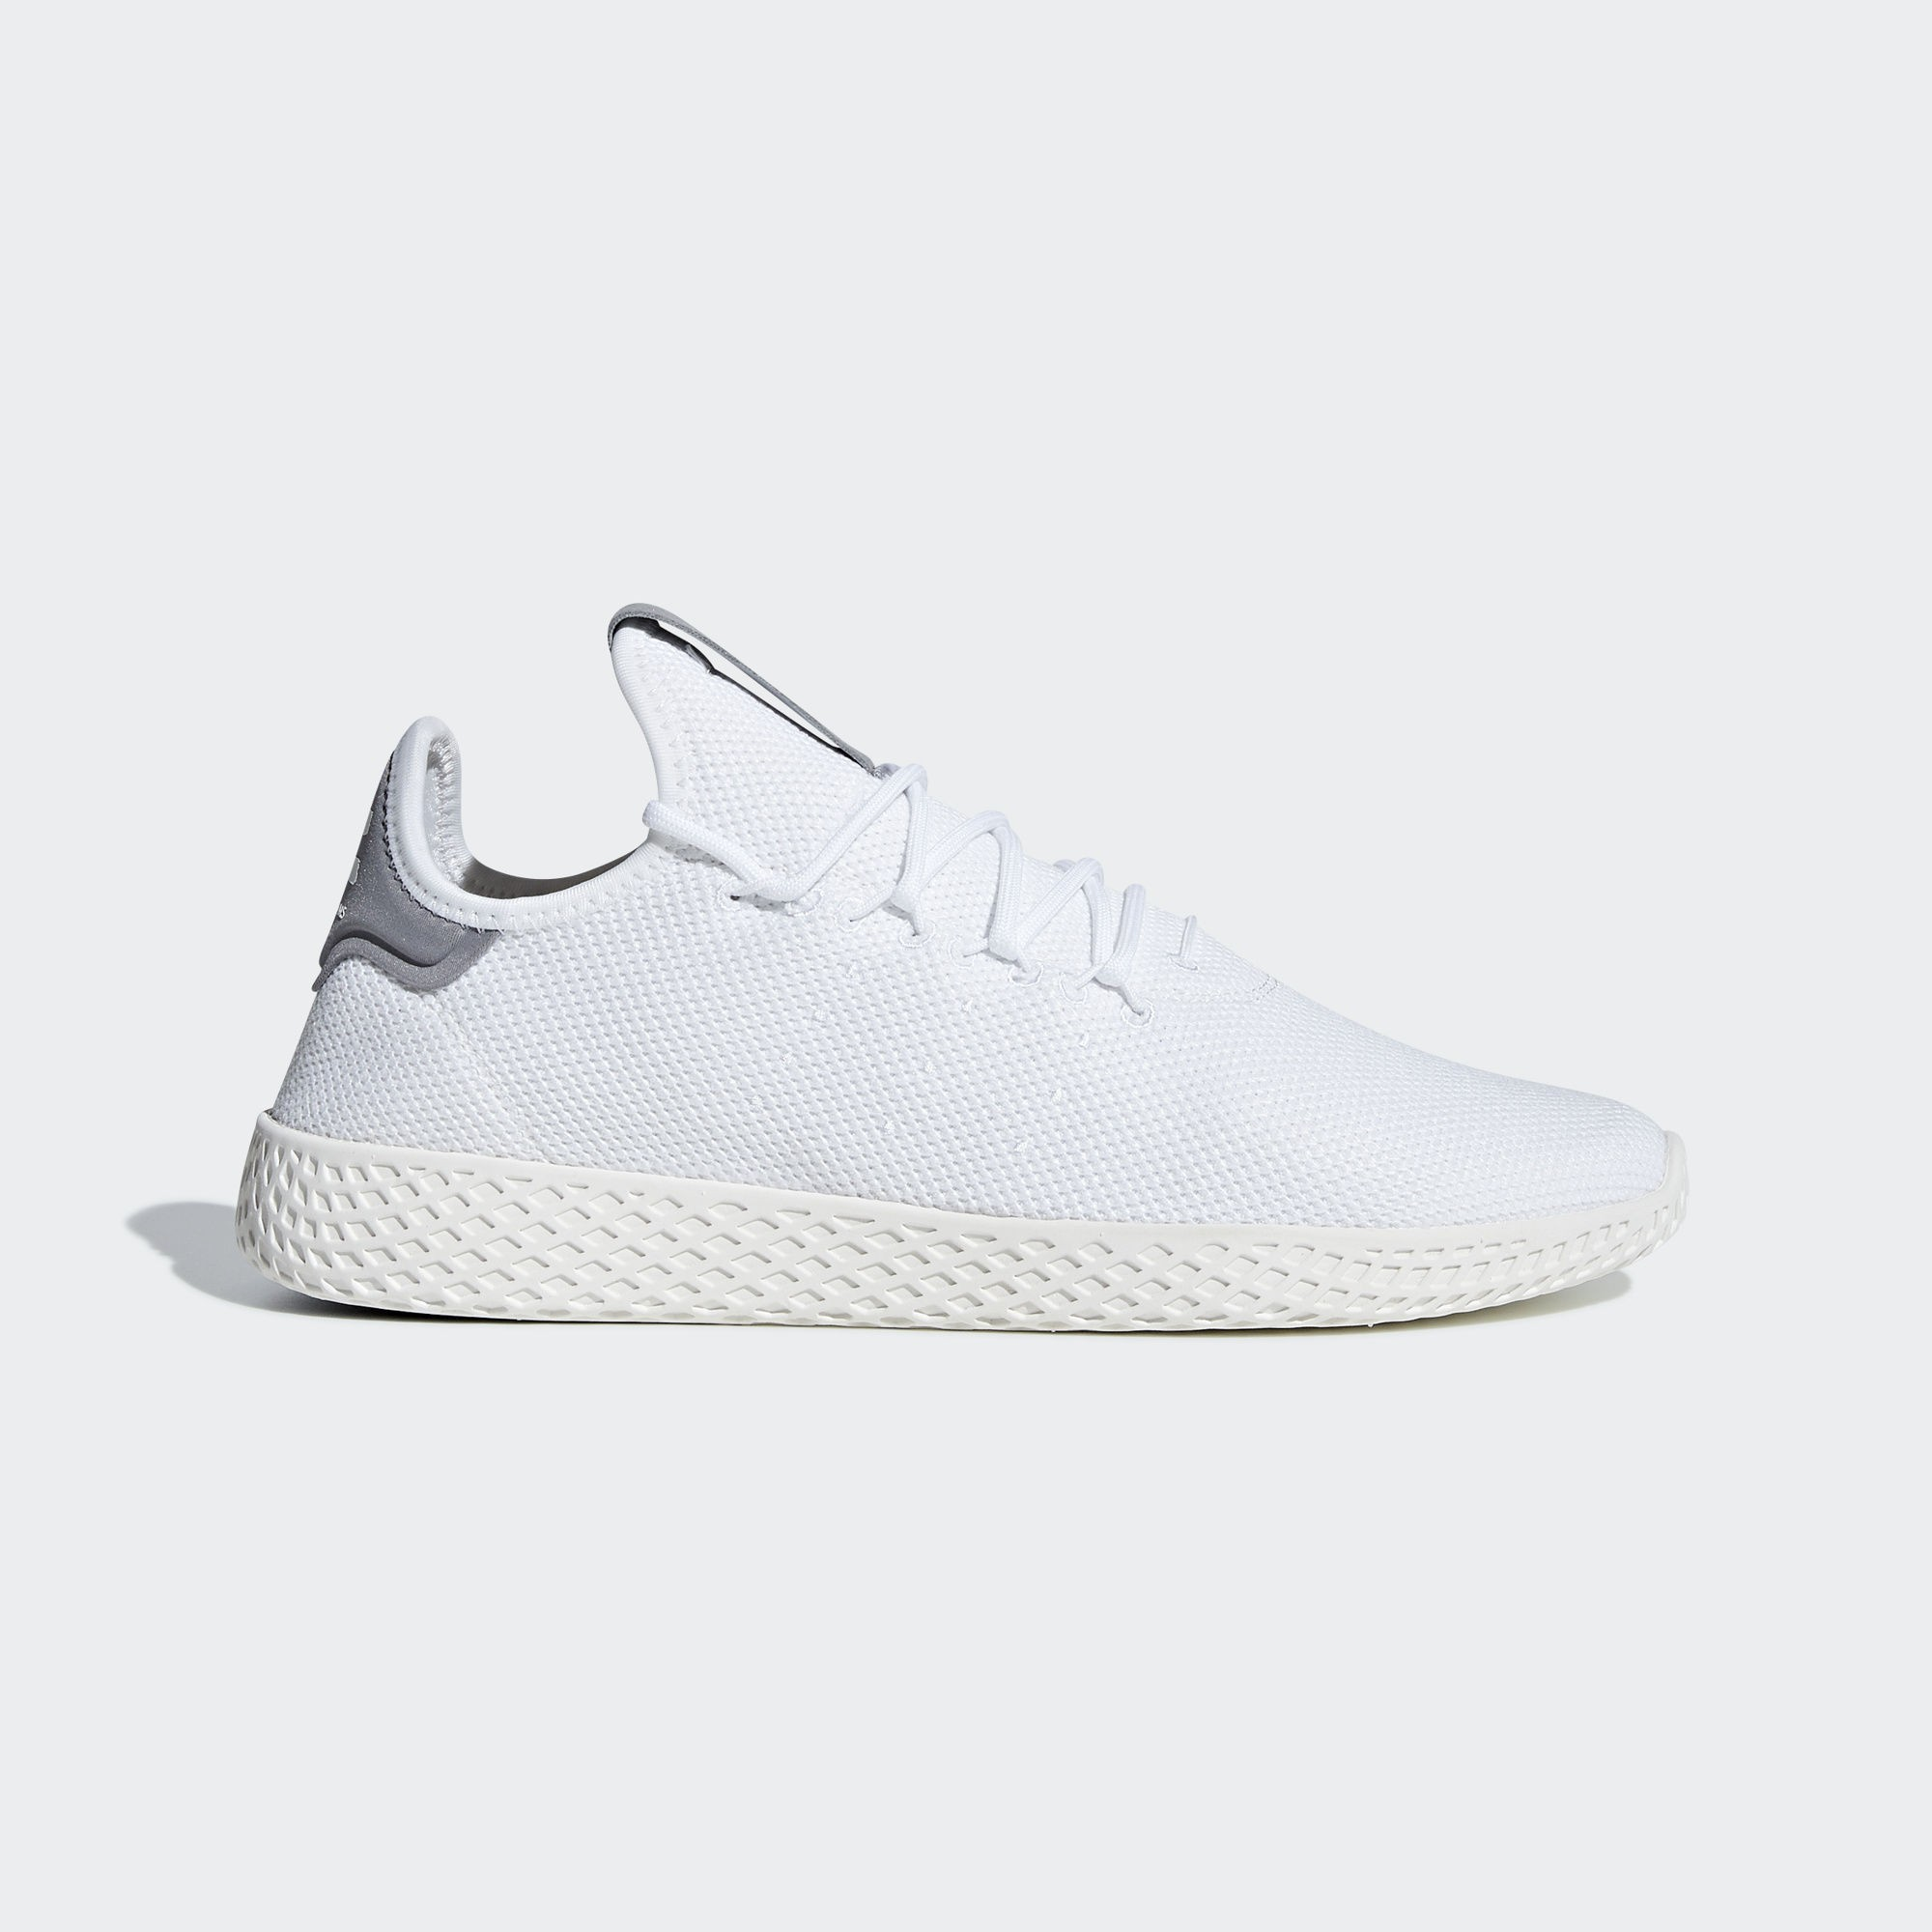 Unisex Adidas Pharrell Williams Tennis HU white/grey